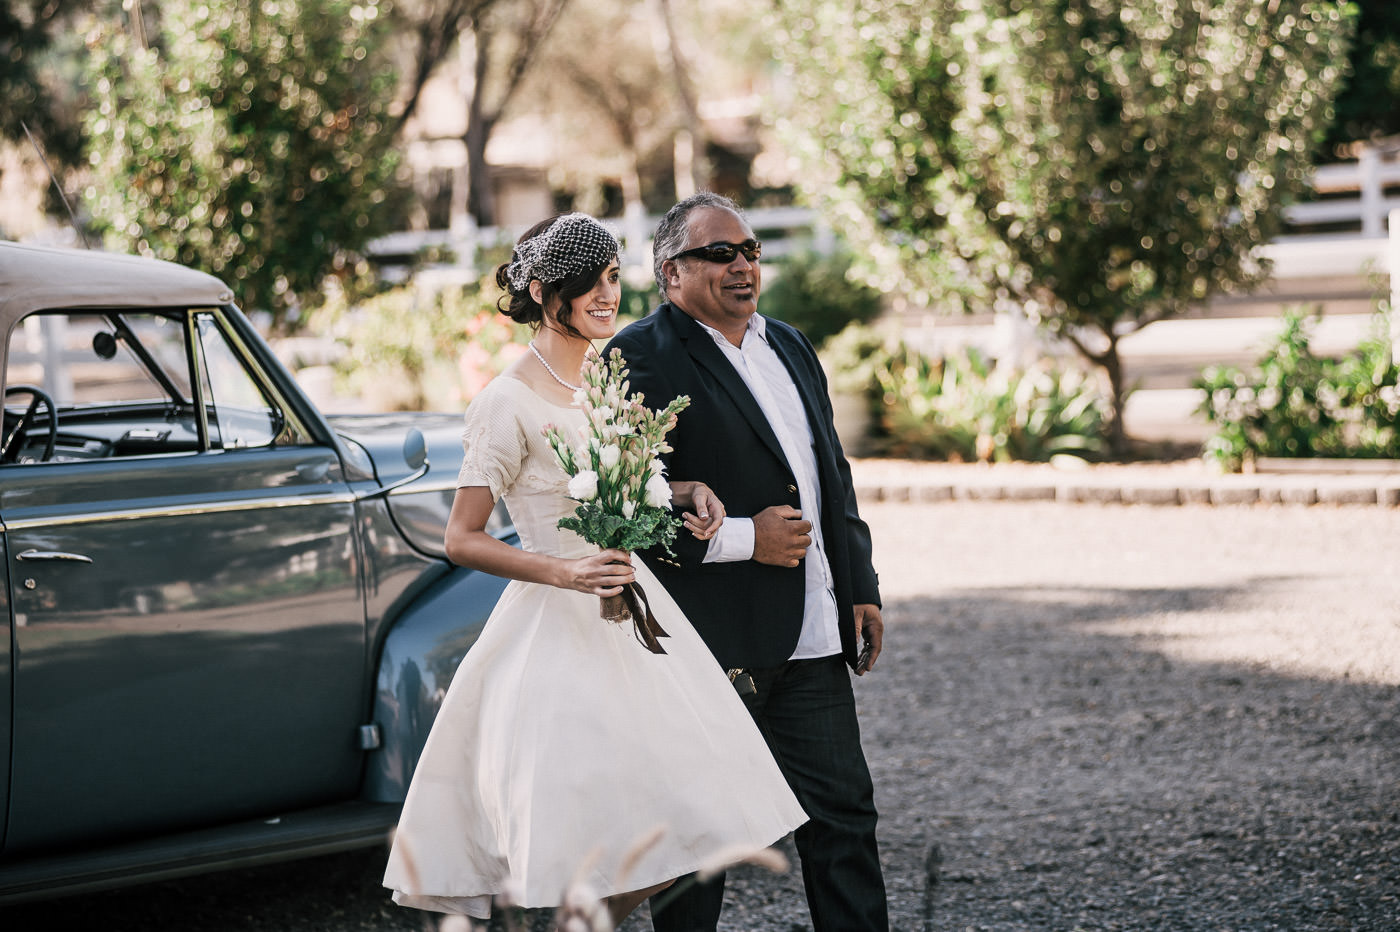 Father happily walks his daughter down the isle and she smiles as she sees the groom at their Temecula wine country wedding